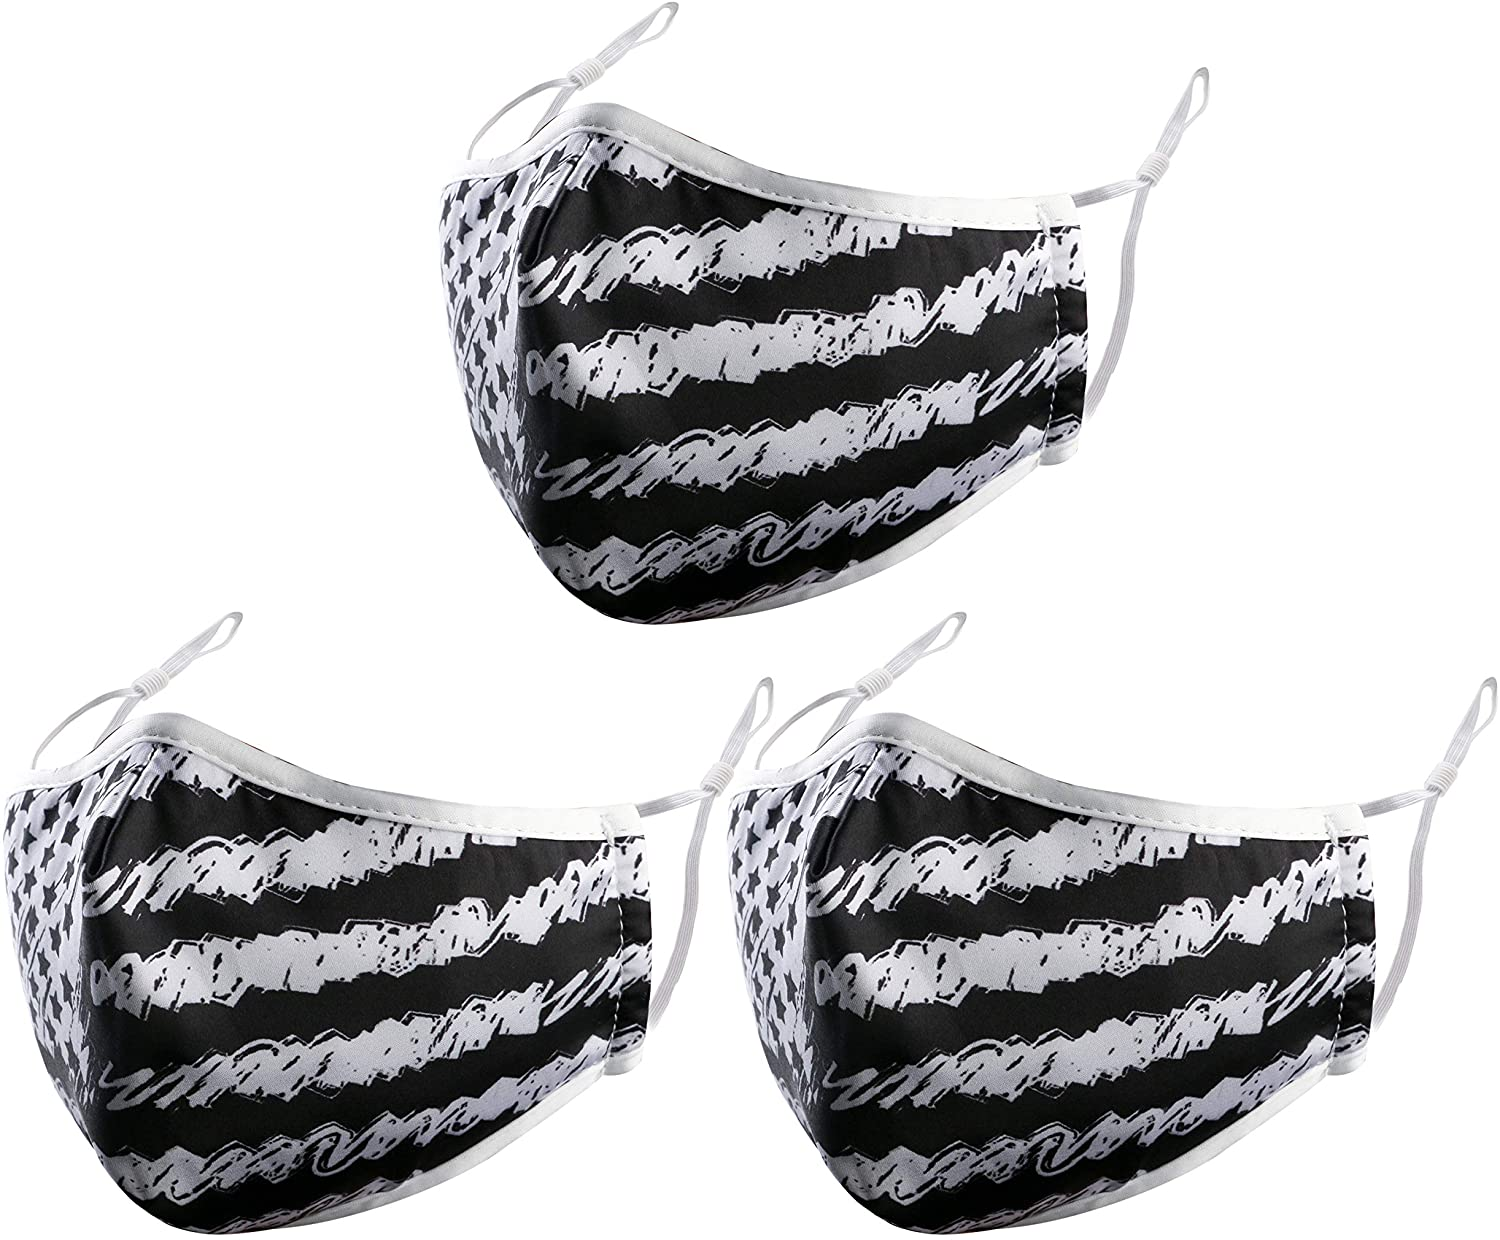 Face Covering, 3-Ply Unisex Reusable Mouth Covering adjustable in Sizes - Breathable Comfort Washable Dust Covering, Face Covering for Home Office Work Outdoors (Black US Flag)